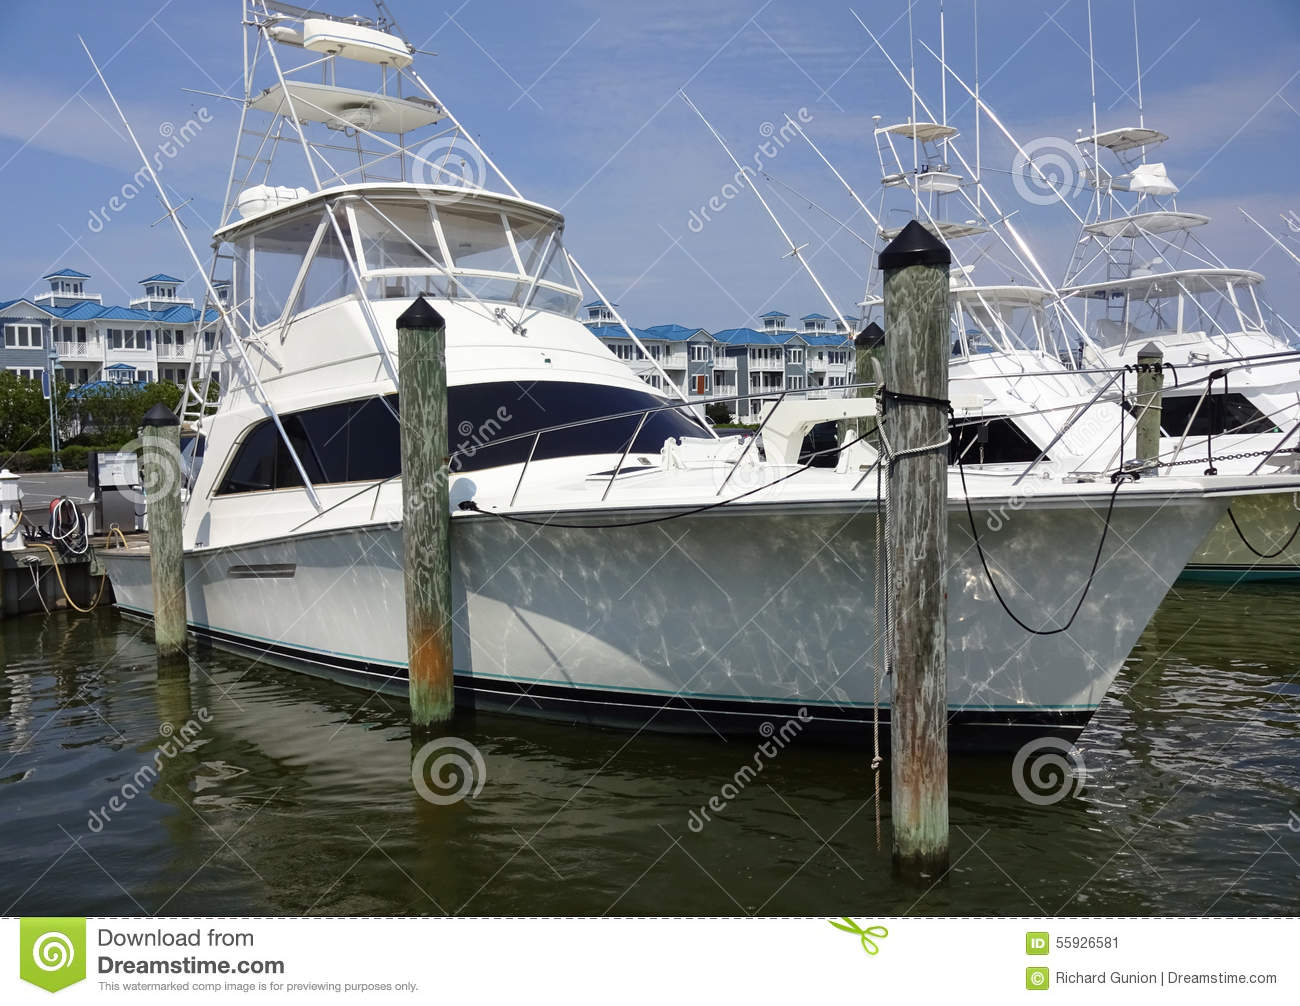 Luxury sport fishing boat stock image image of city for Md fishing license cost